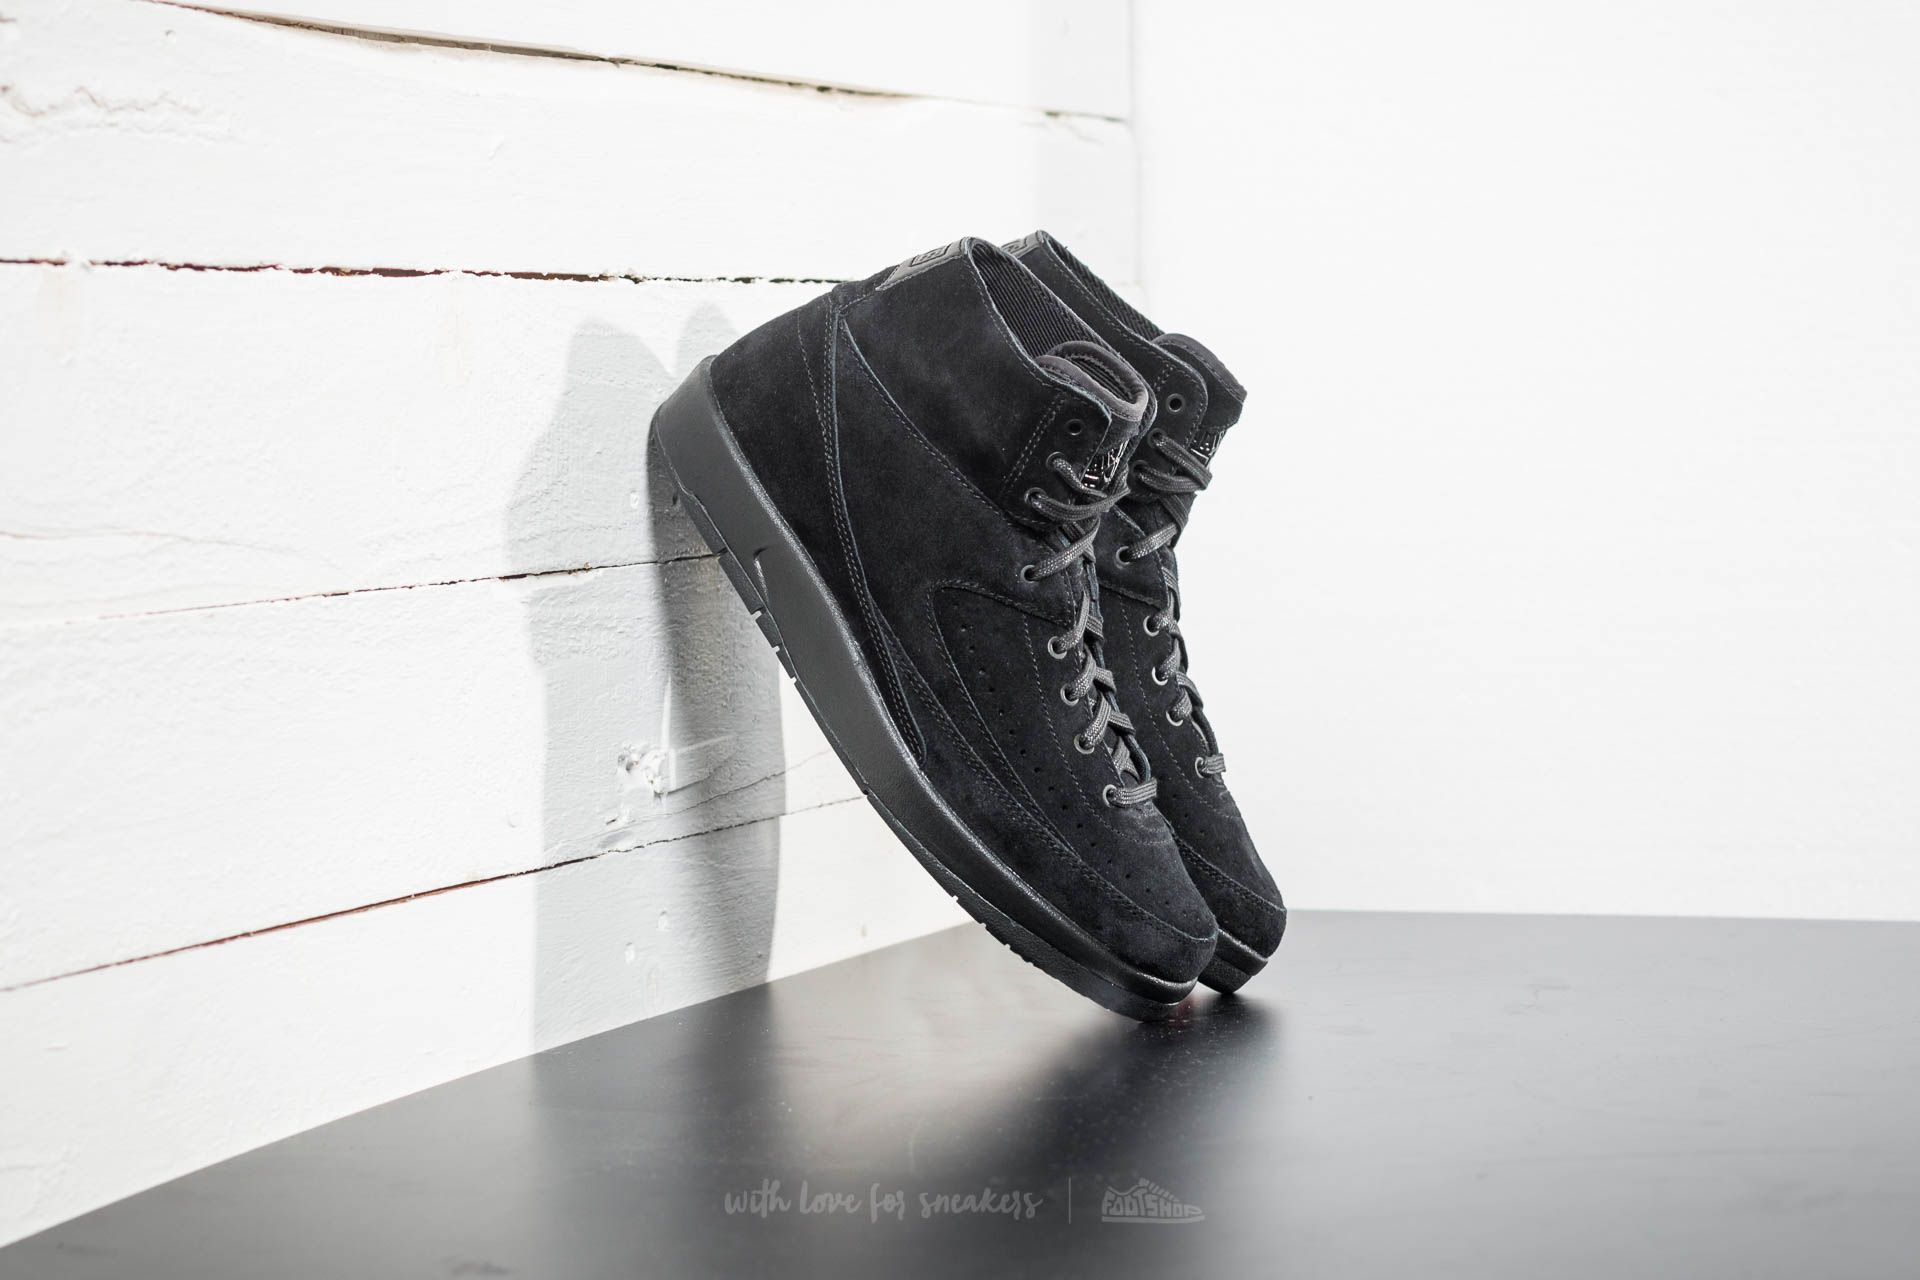 69953fe389d858 Air Jordan 2 Retro Decon Black  Black